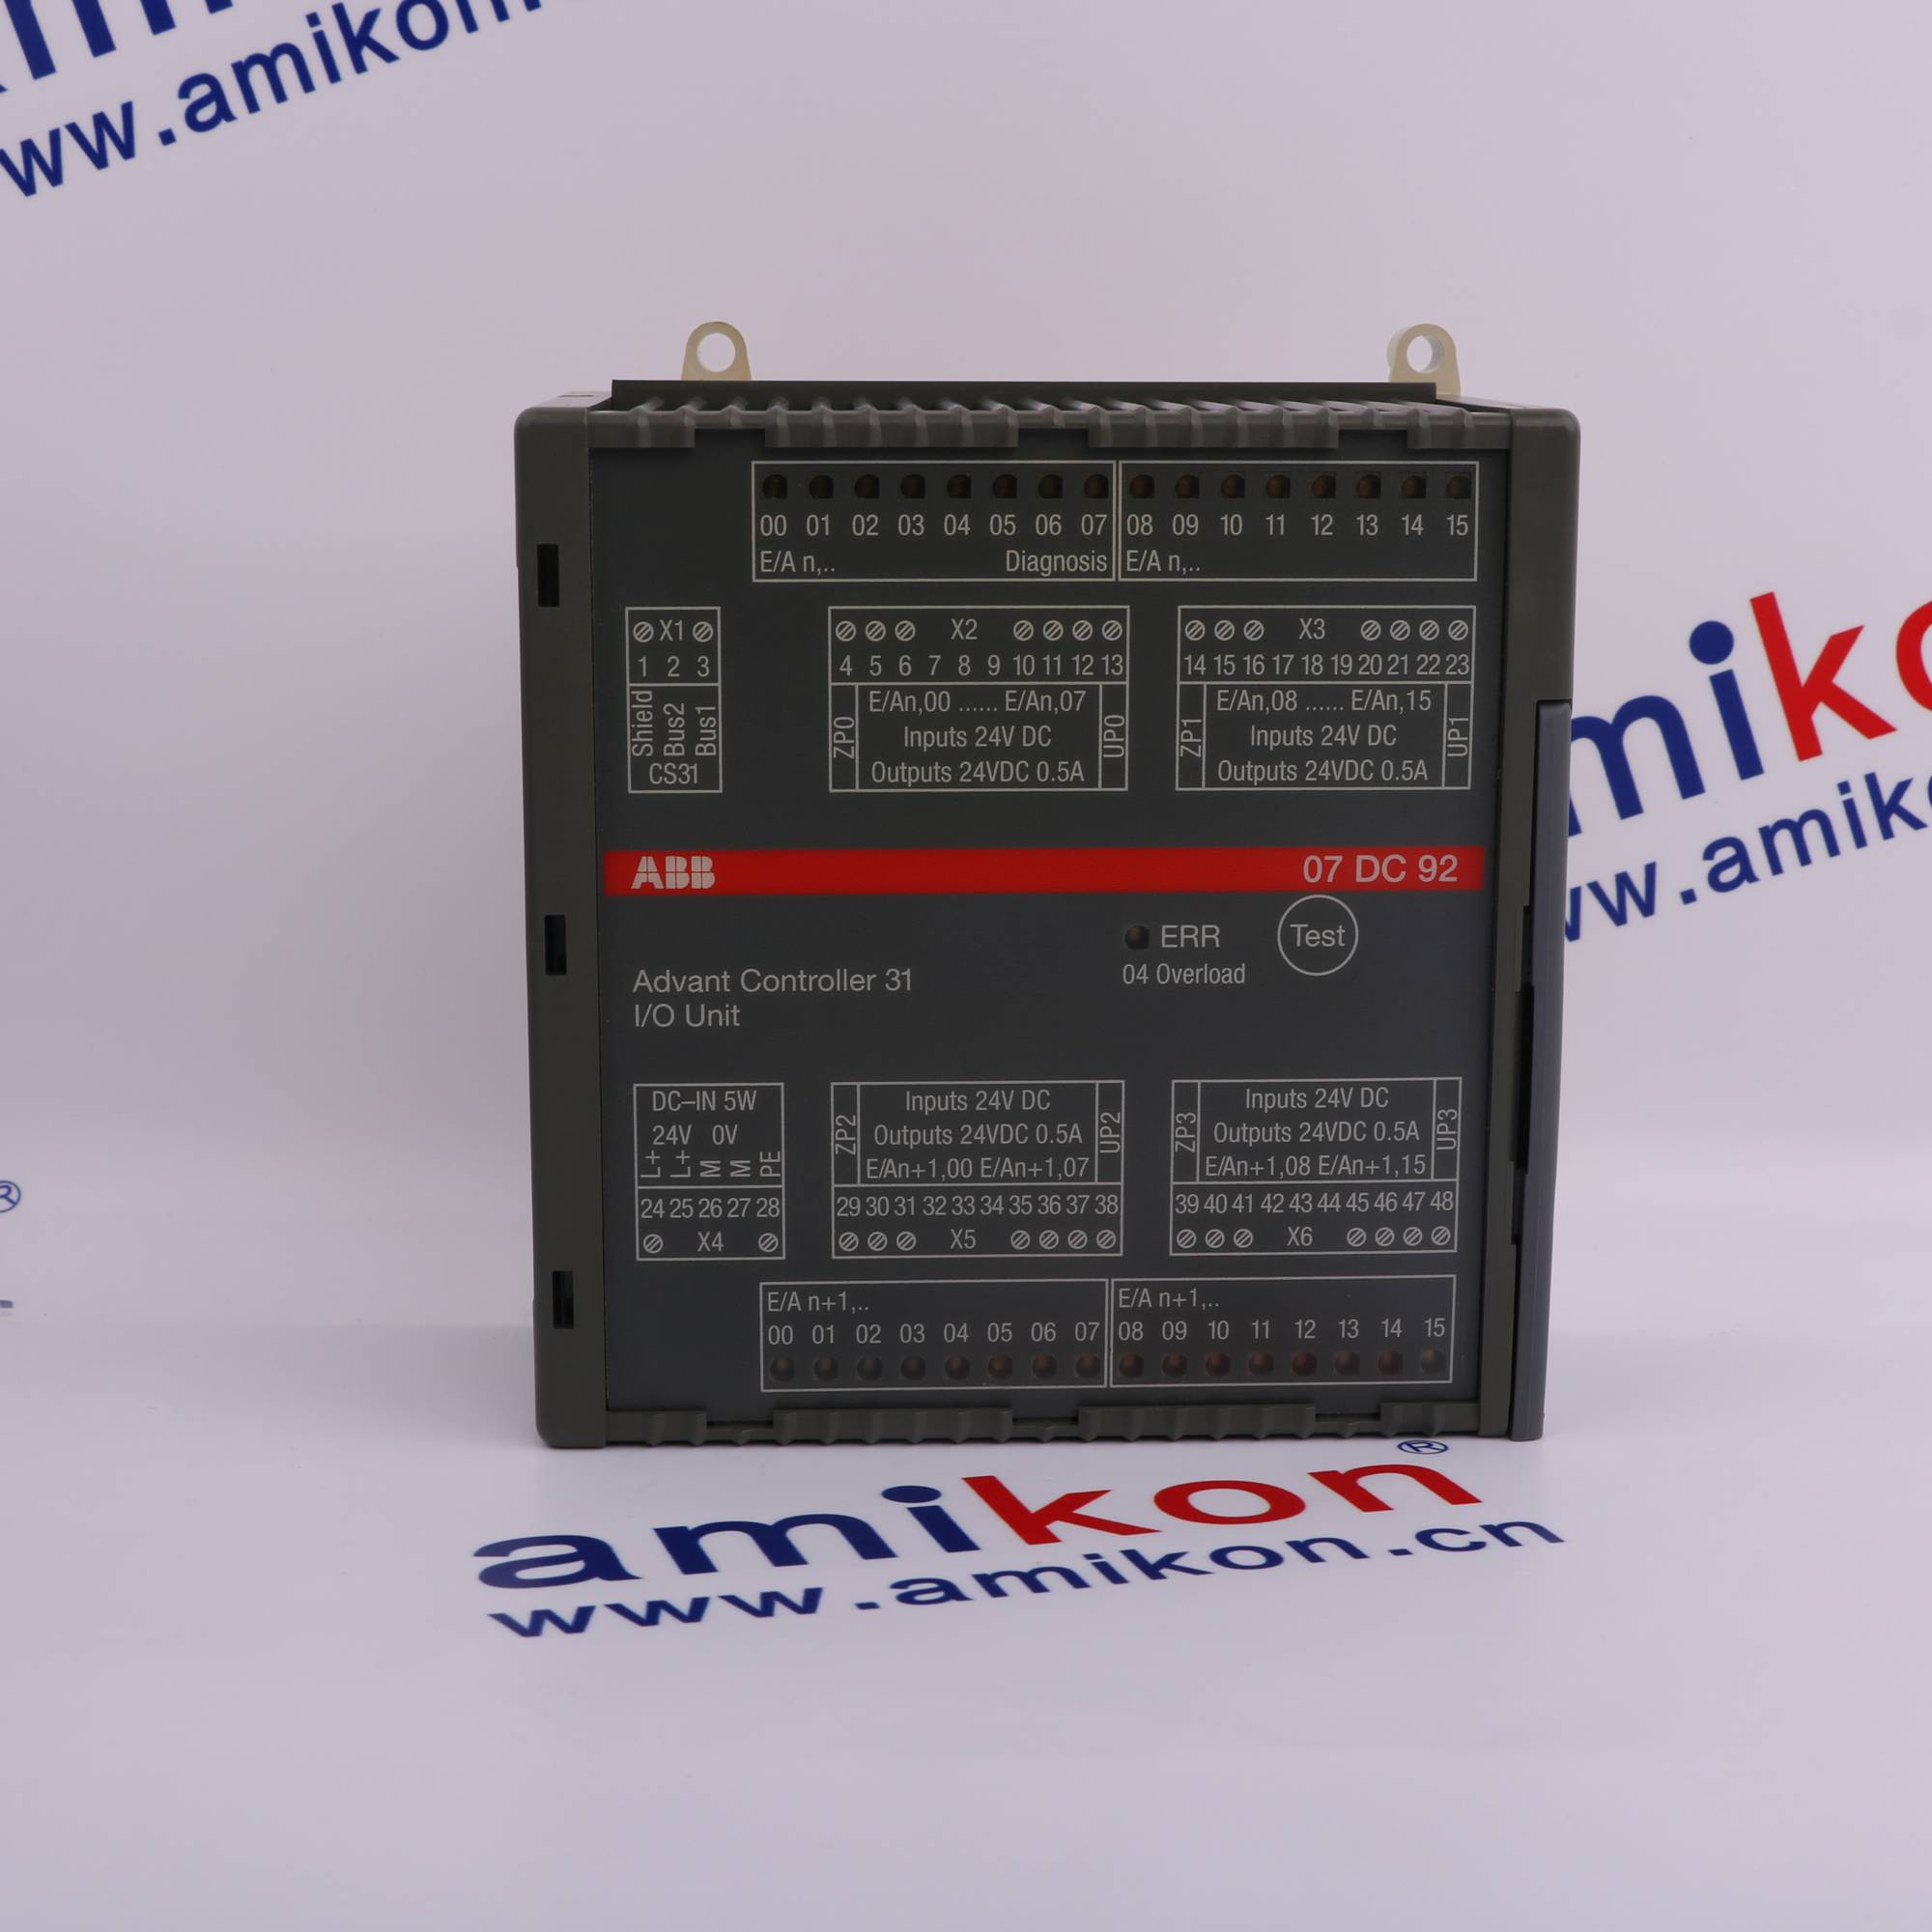 GJV3074353R1 Genuine ABB spare parts NEW &Original PLC-Mall wholesaler